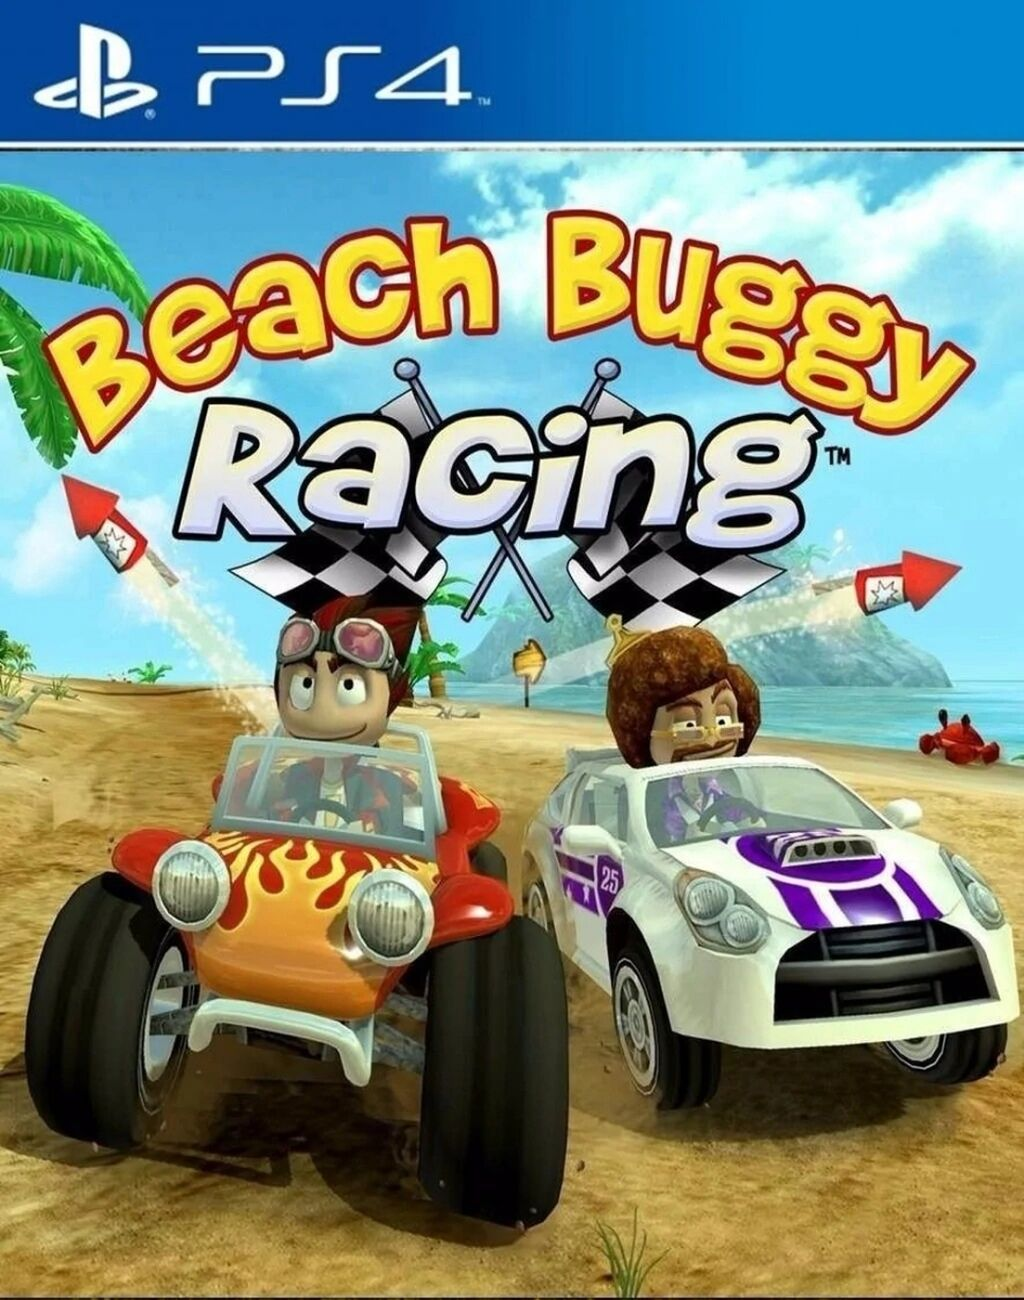 Beach Buggy Racing [PS4] 6.72 / 7.02 [EUR] (2015) [Русский] (v1.01)